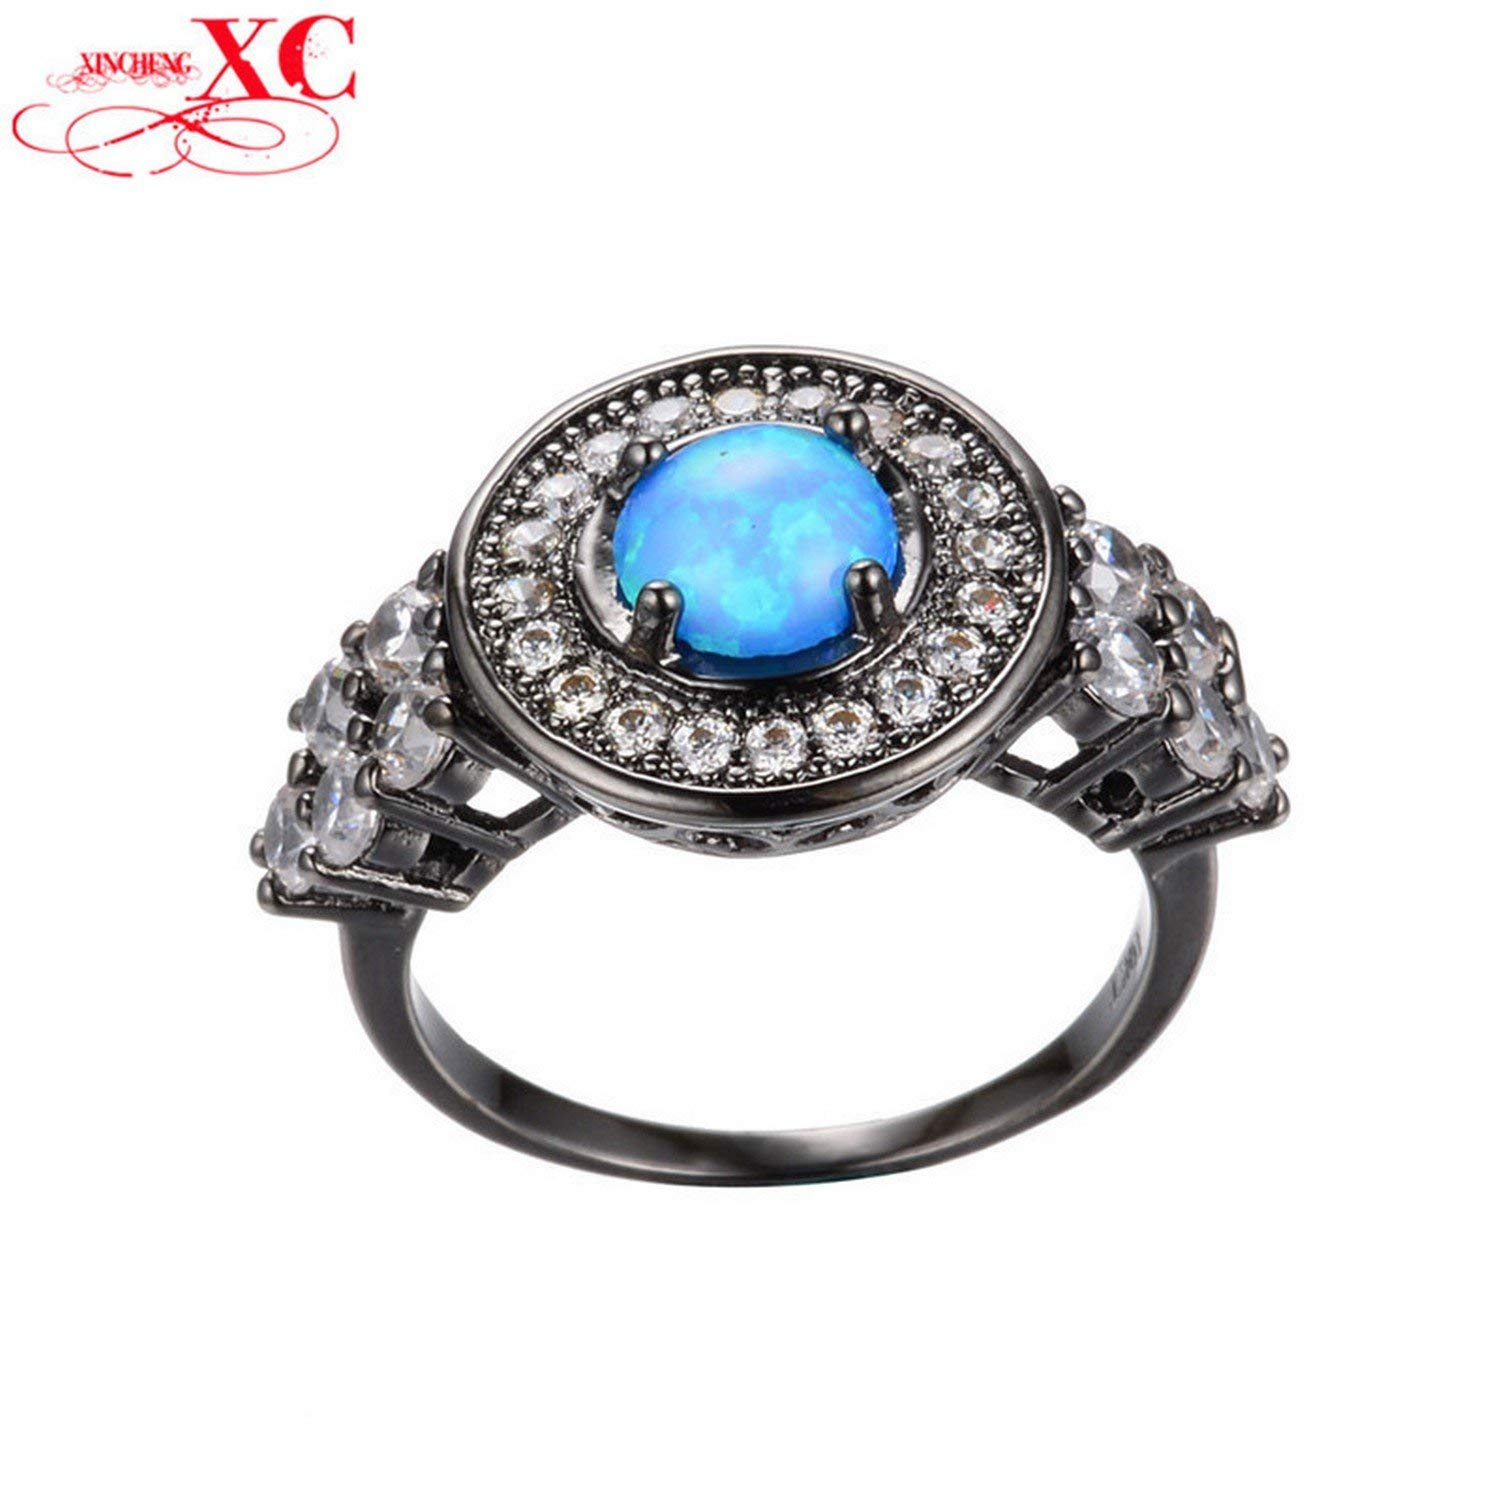 Dudee Jewelry Opal Stone Ring Women Fashion Jewelry T Black Gold Filled Zircon Finger Ring Size 6/7/8/9 Wedding Ring anel anillo RB0257